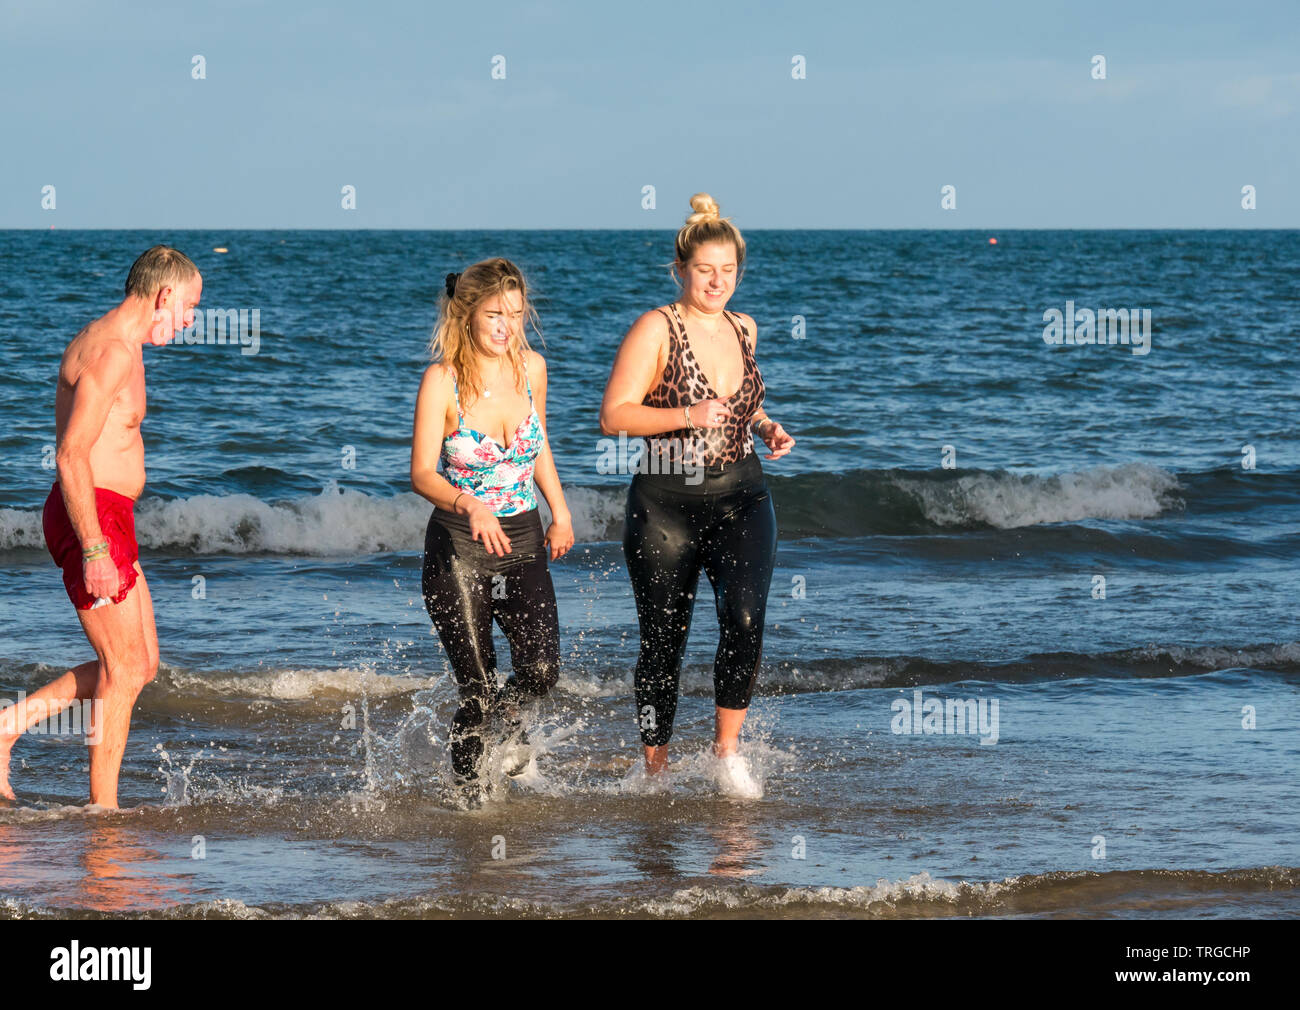 Loony Dook, New Year's Day: People brave cold water, West Bay, Firth of Forth, North Berwick, East Lothian, Scotland, UK. Young women come out of sea - Stock Image